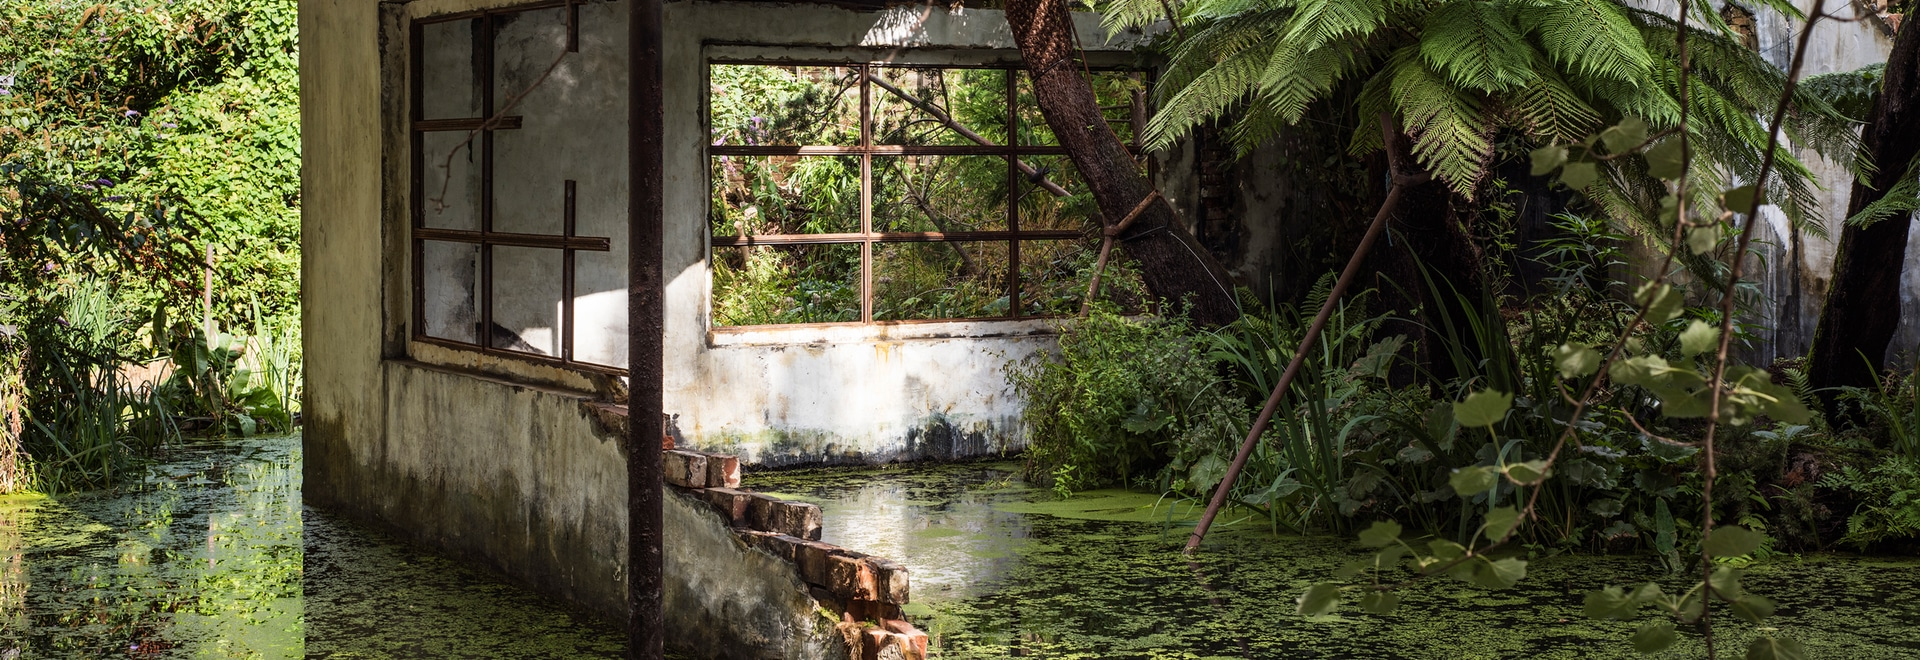 Modernist ruin in London canal provides a glimpse at an uncertain future